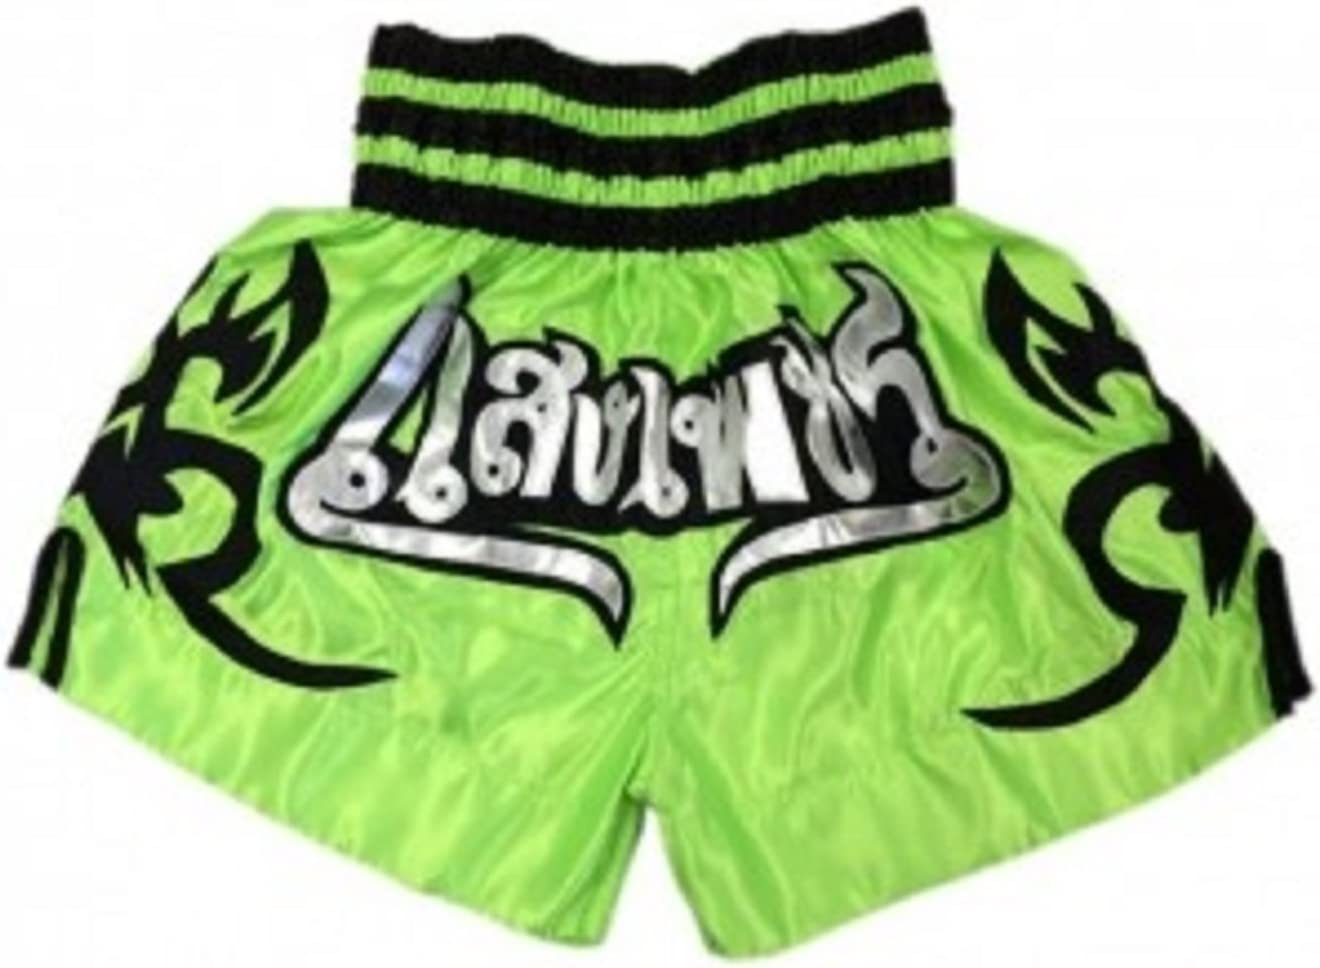 Woldorf Boxing Muay Thai Shorts in Satin Embroidery Green Kickboxing Martialarts